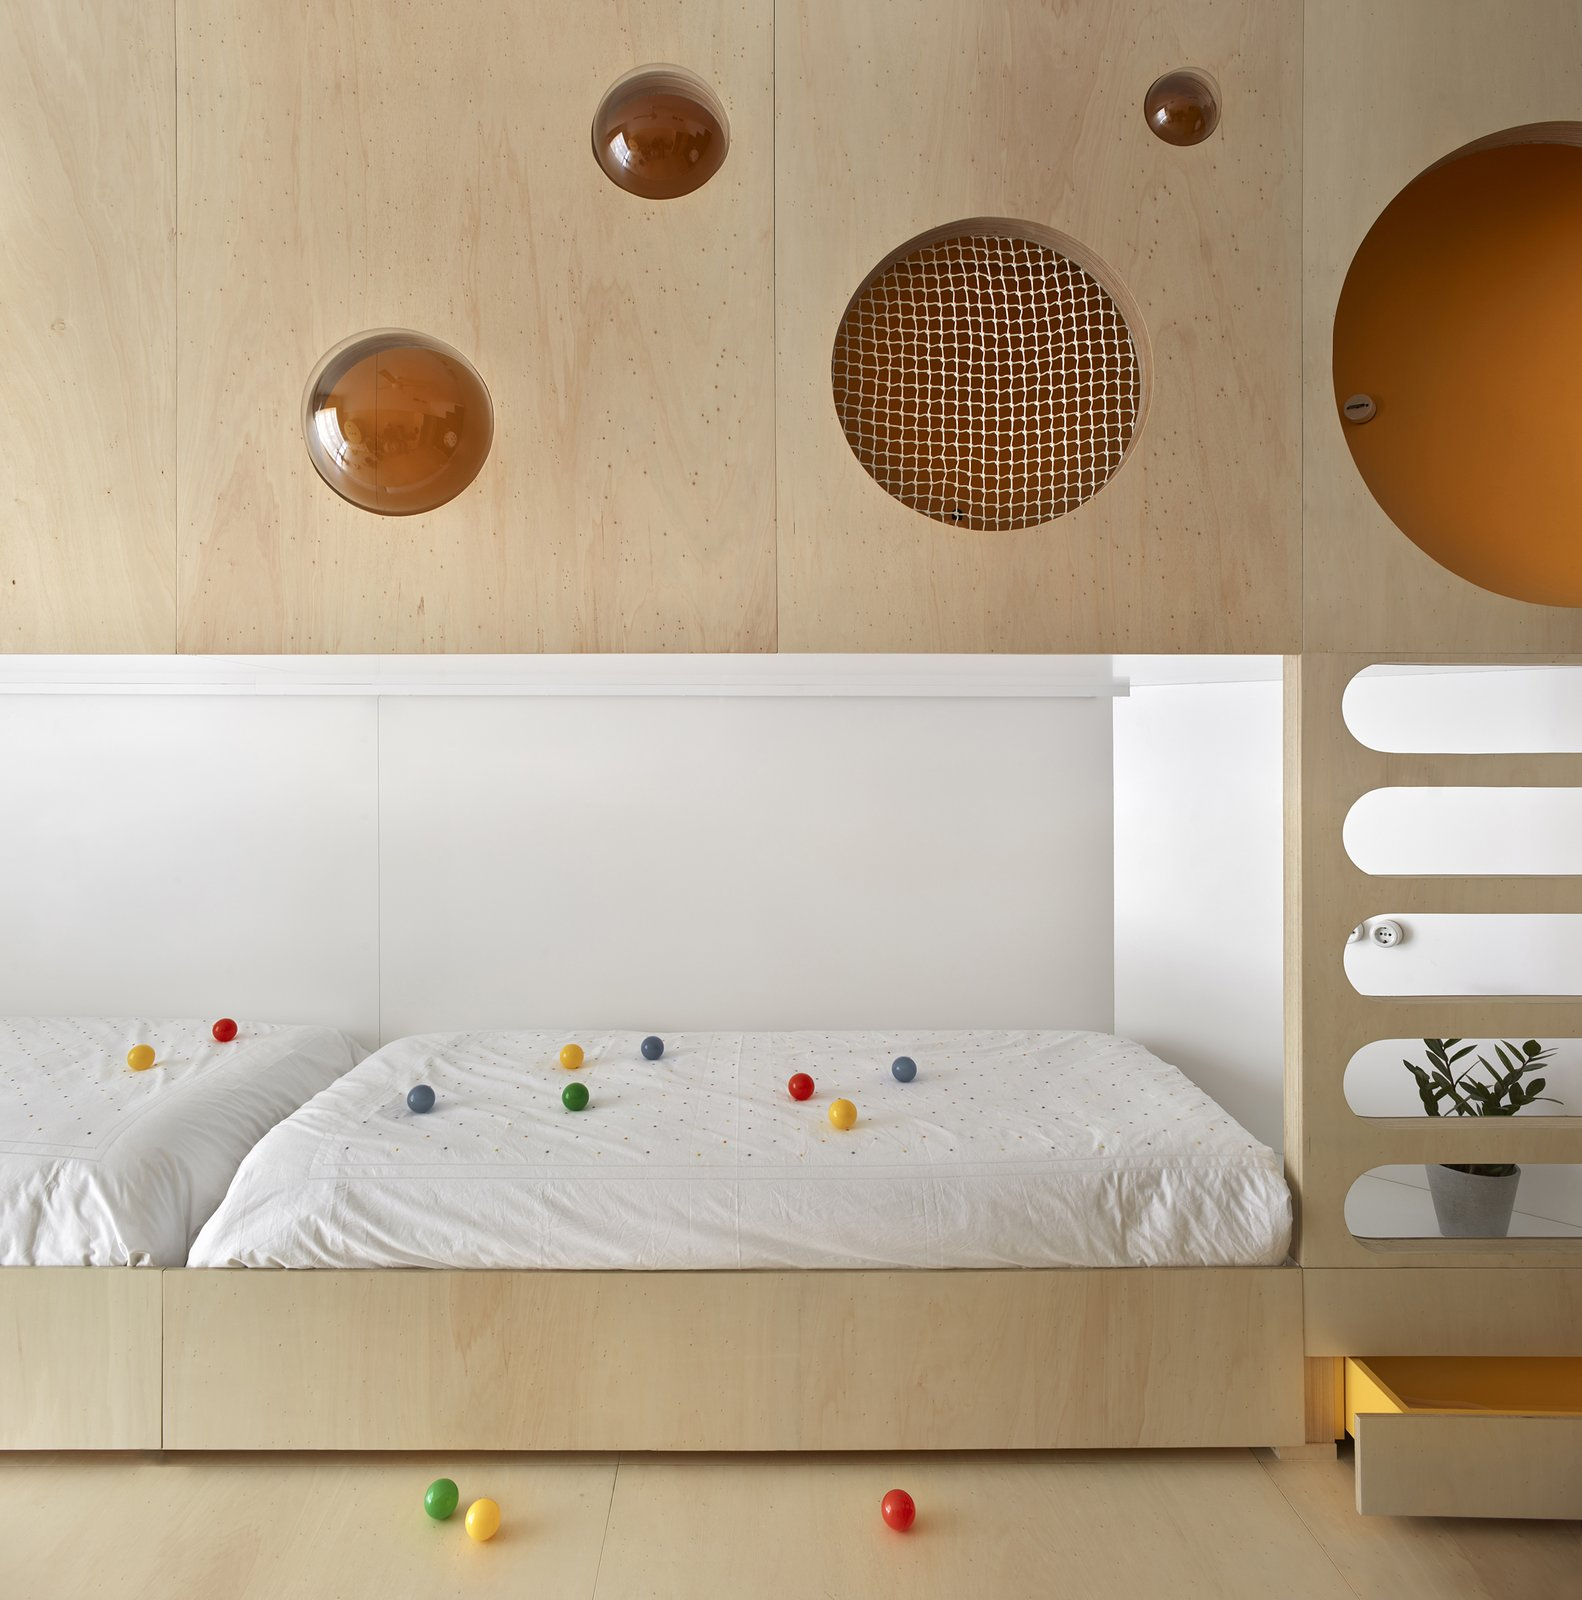 Kids Room, Playroom Room Type, Bedroom Room Type, Toddler Age, Neutral Gender, Bed, and Light Hardwood Floor  Photos from The Toy Box